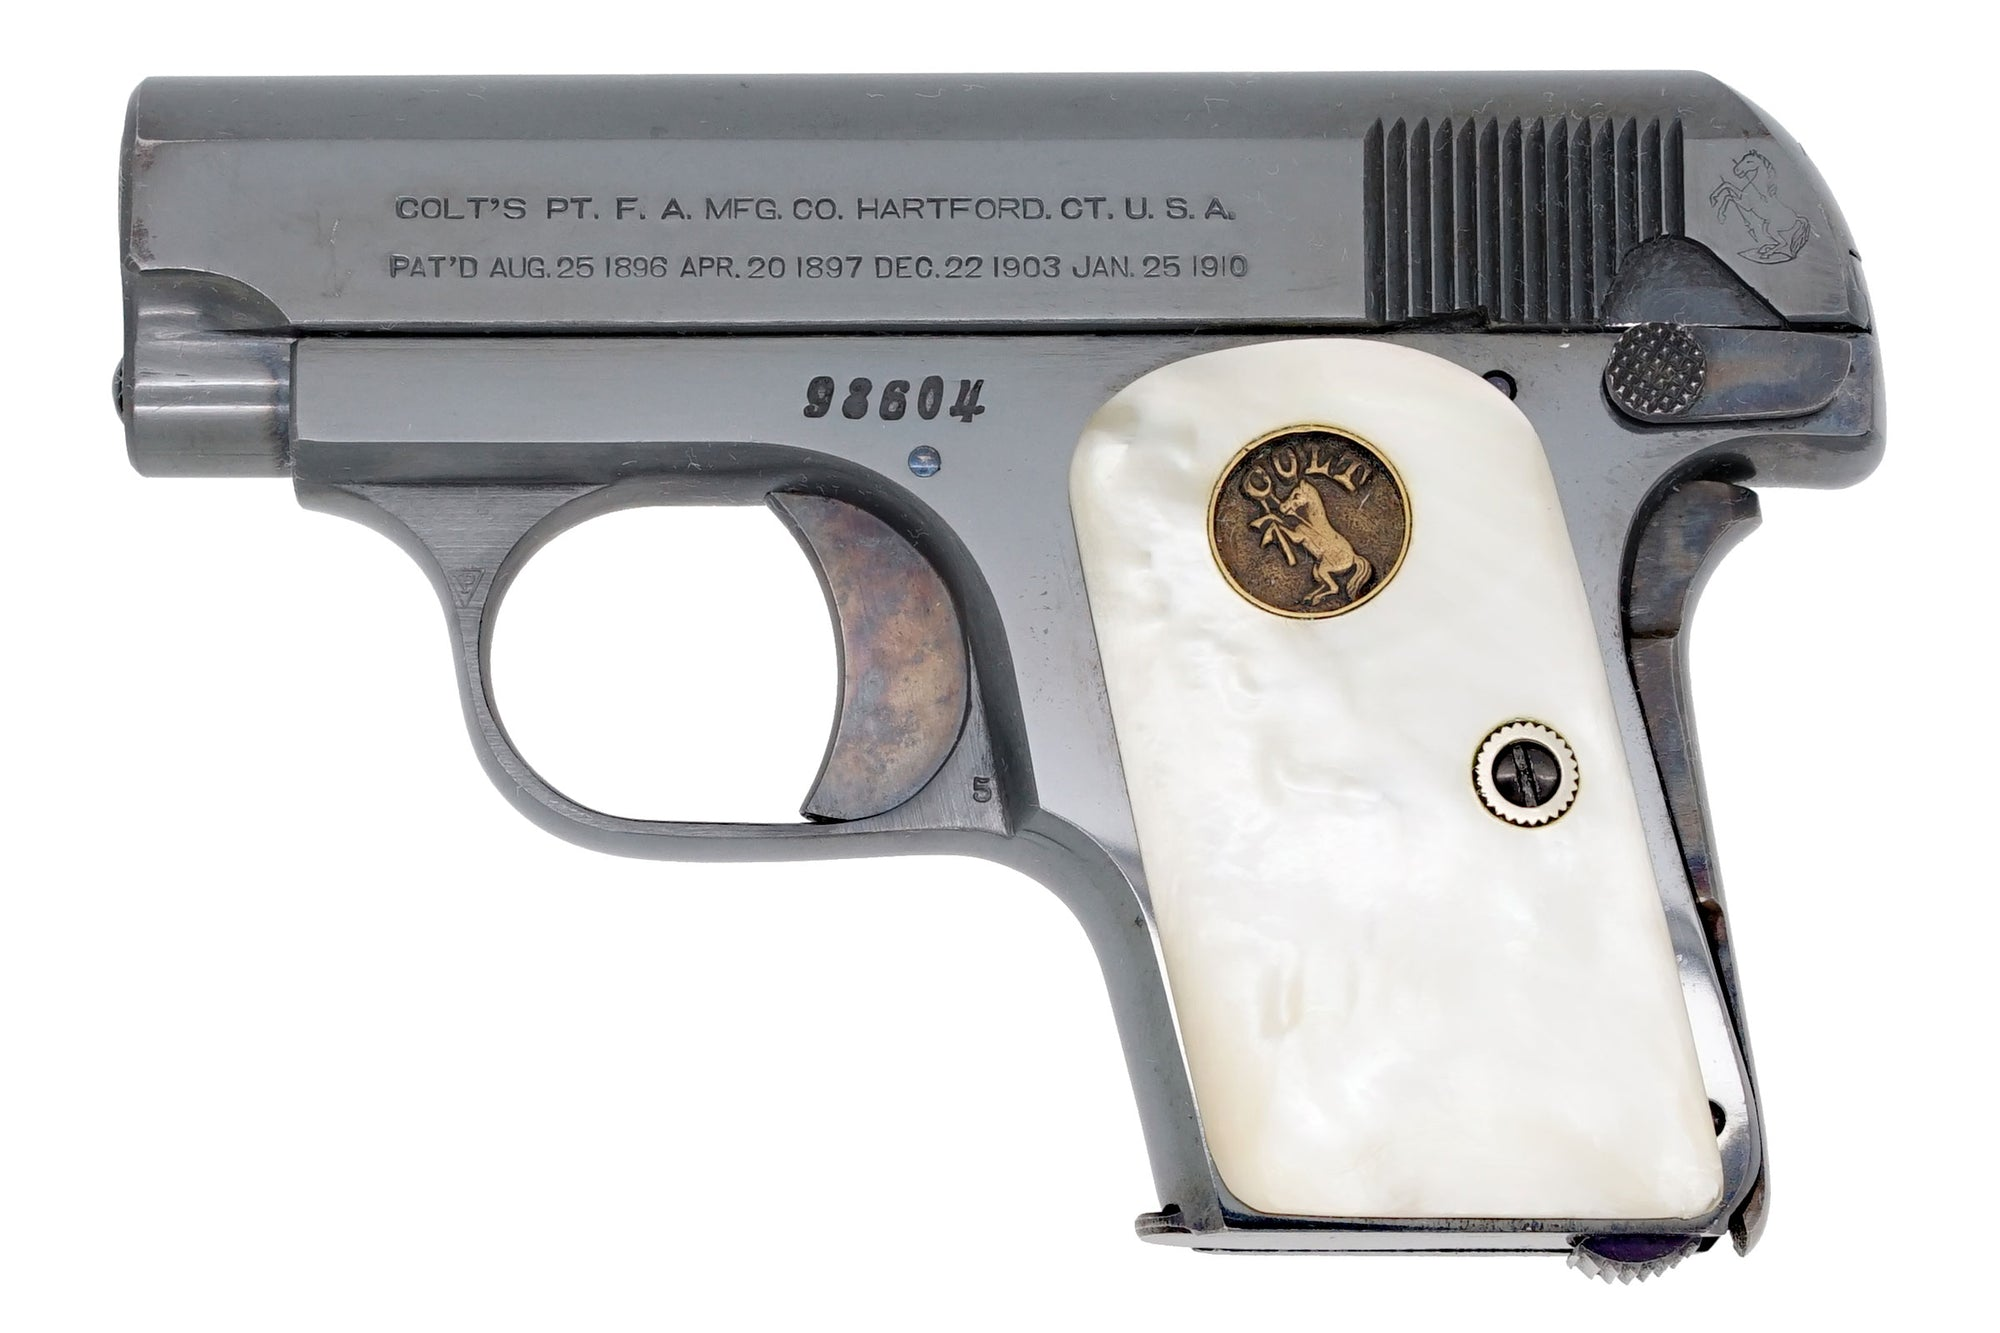 Colt 1908 Vest Pocket 25ACP SN:98604 MFG:1913